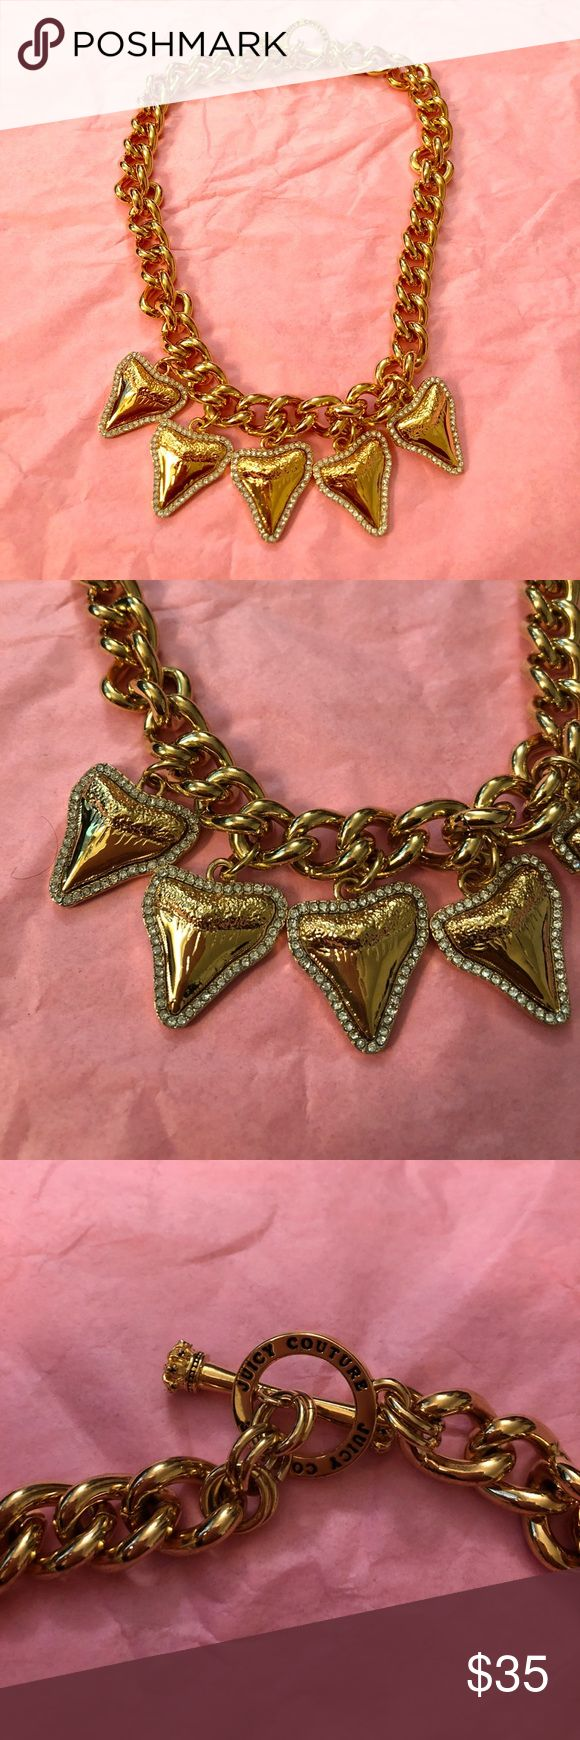 Juicy Couture necklace Never been worn. Gold Juicy Couture Jewelry Necklaces